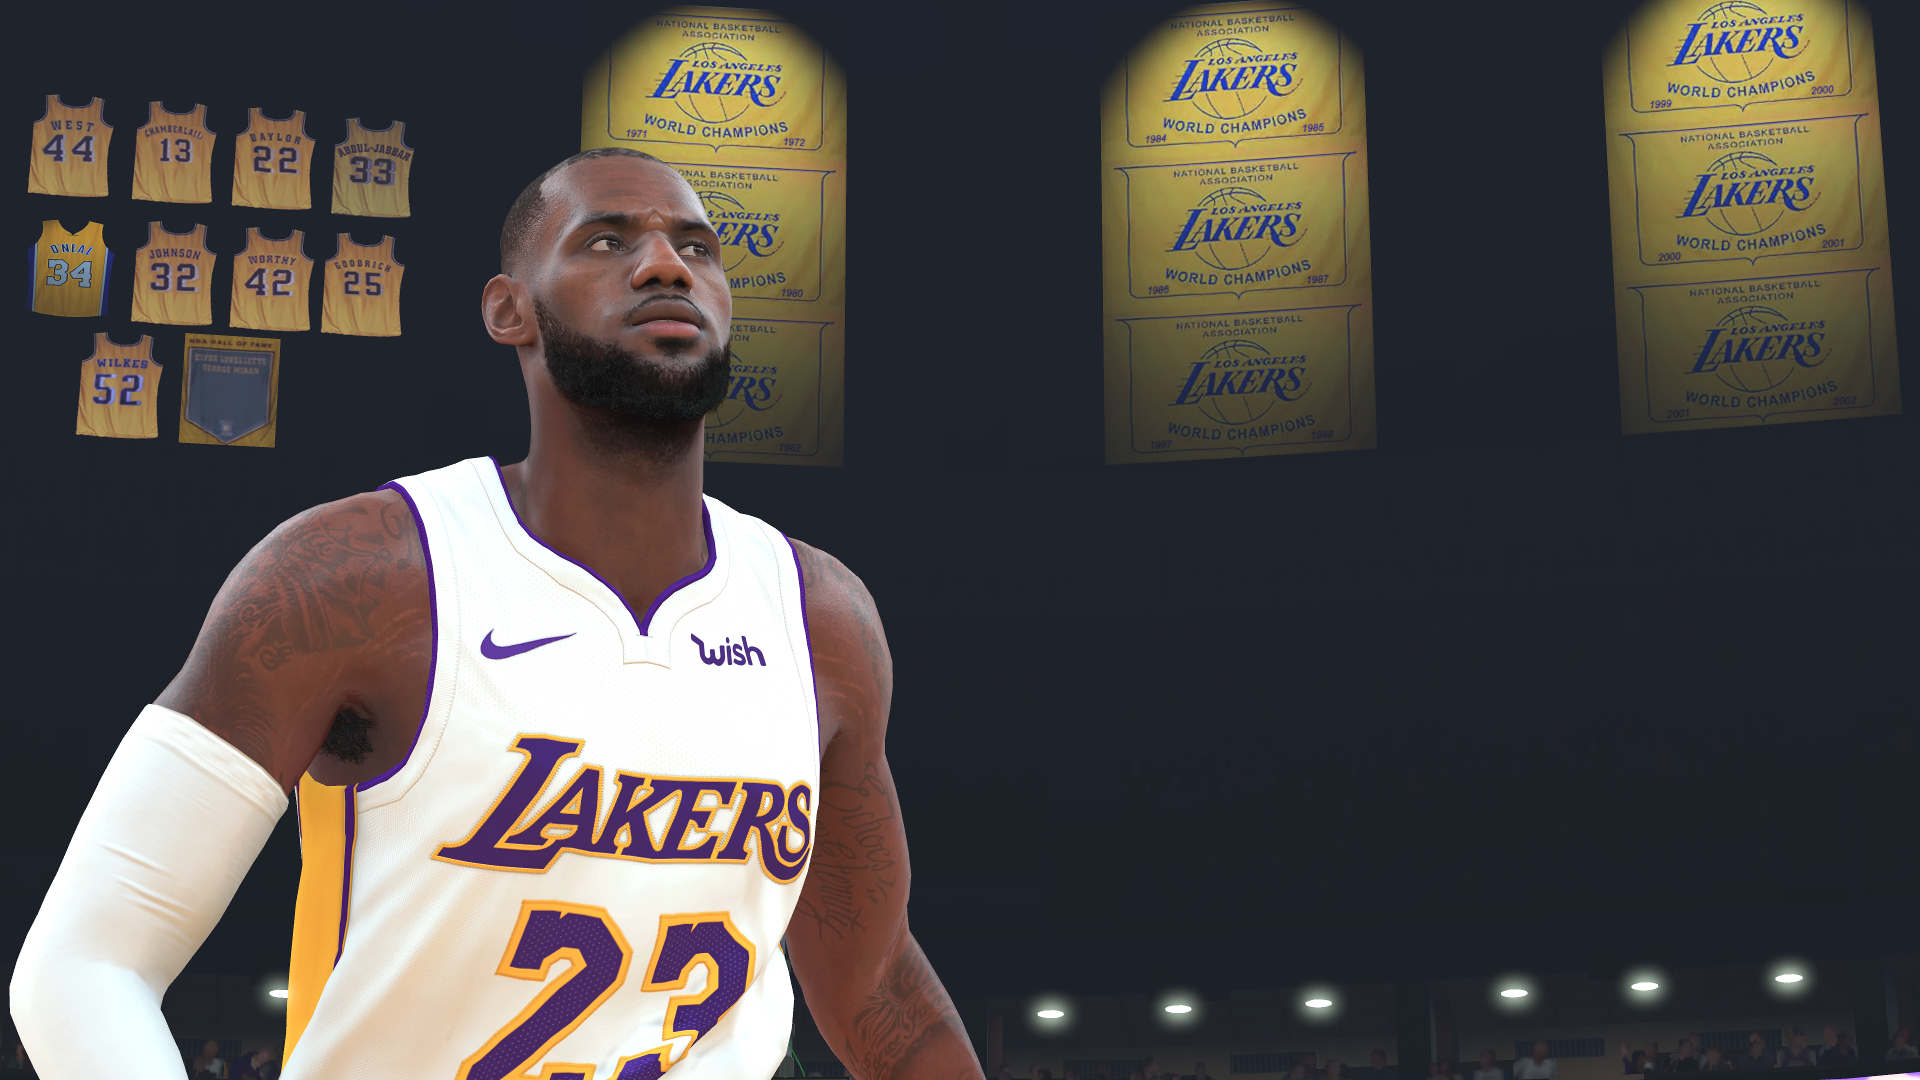 f771cc3ee0c LeBron James reacts to  NBA 2K19  rating  Not bad  for such an old head